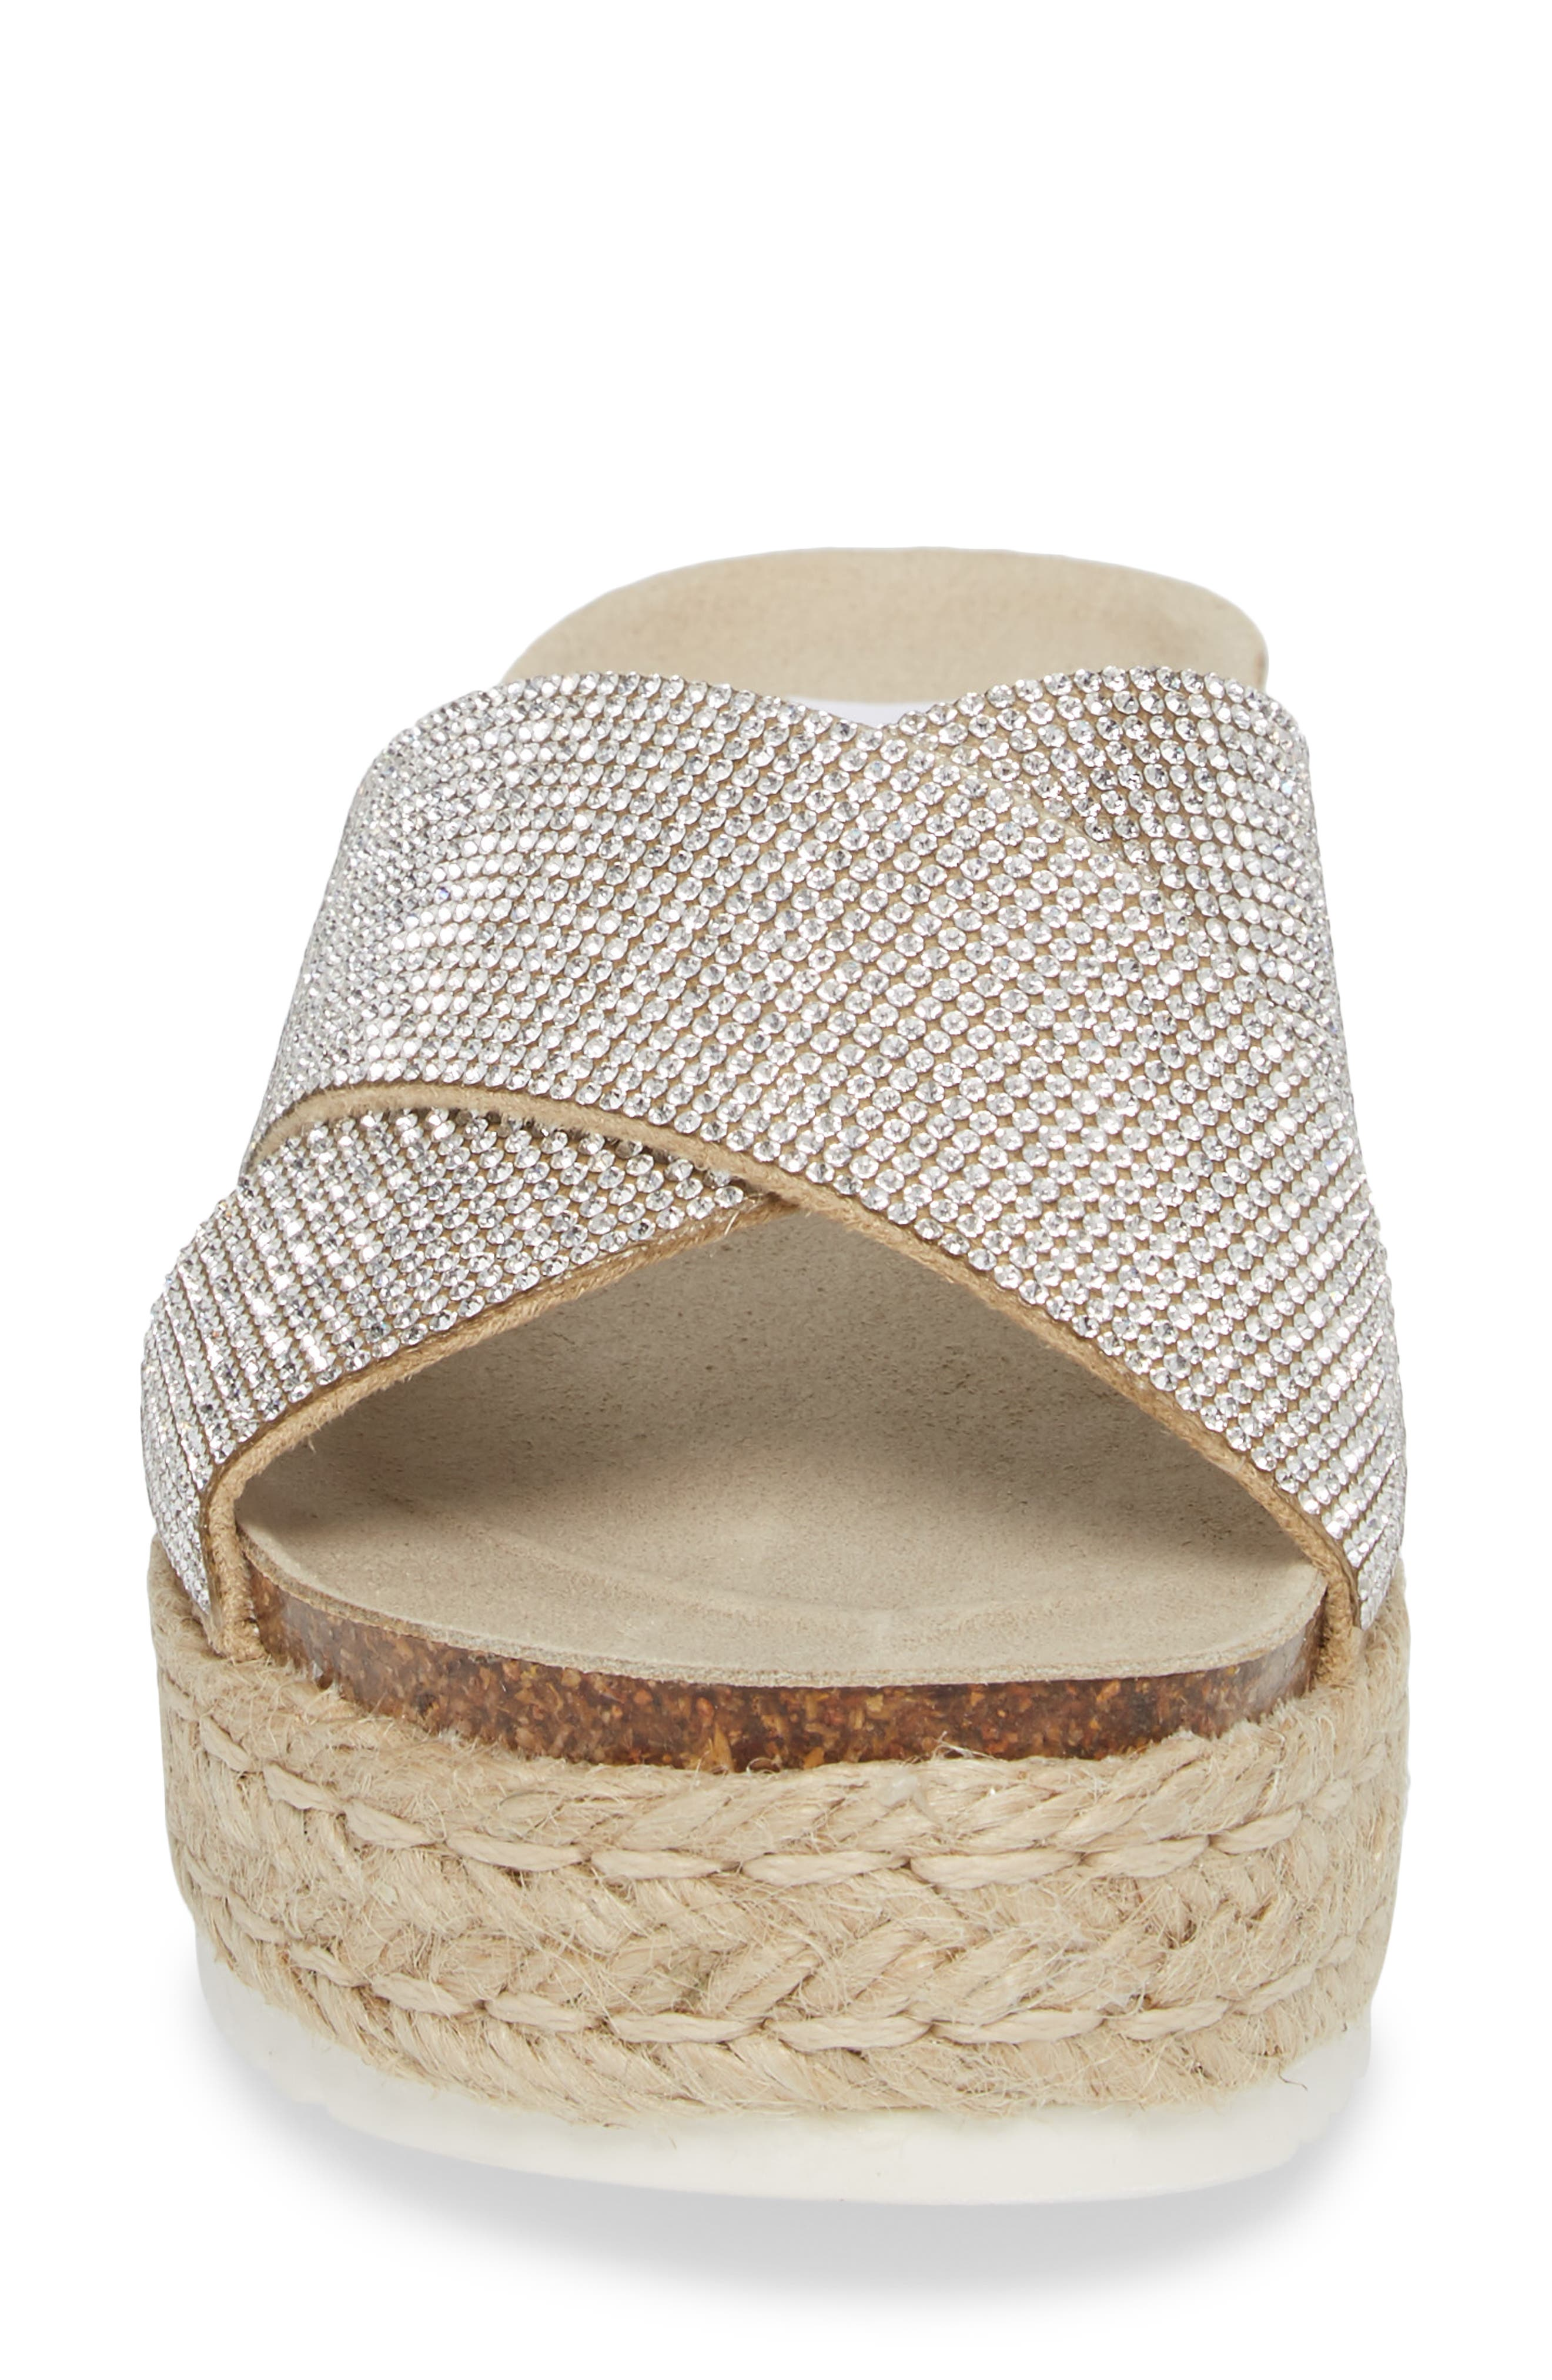 Arran-R Platform Espadrille Sandal,                             Alternate thumbnail 4, color,                             Rhinestone